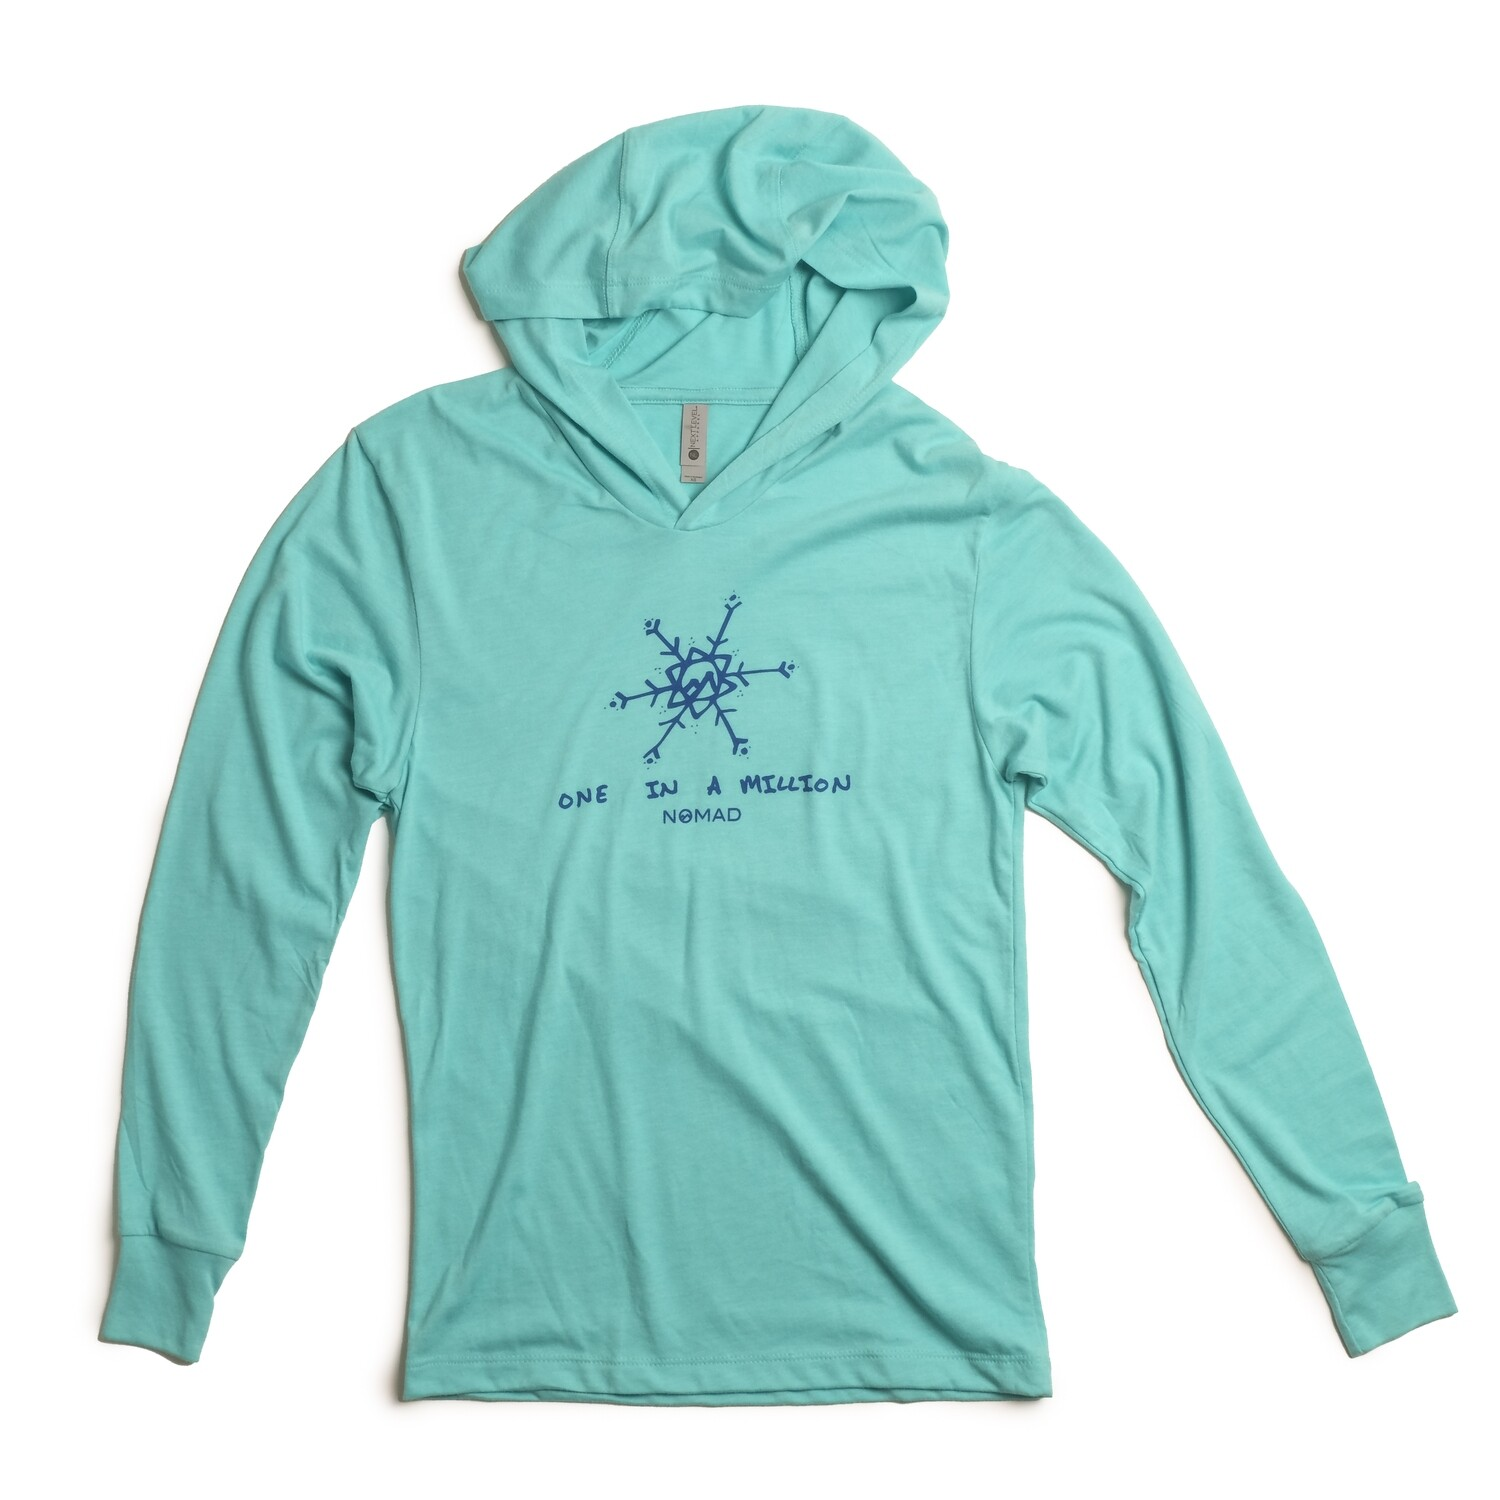 Nomad LS One In a Million Hooded T - Tahiti Blue